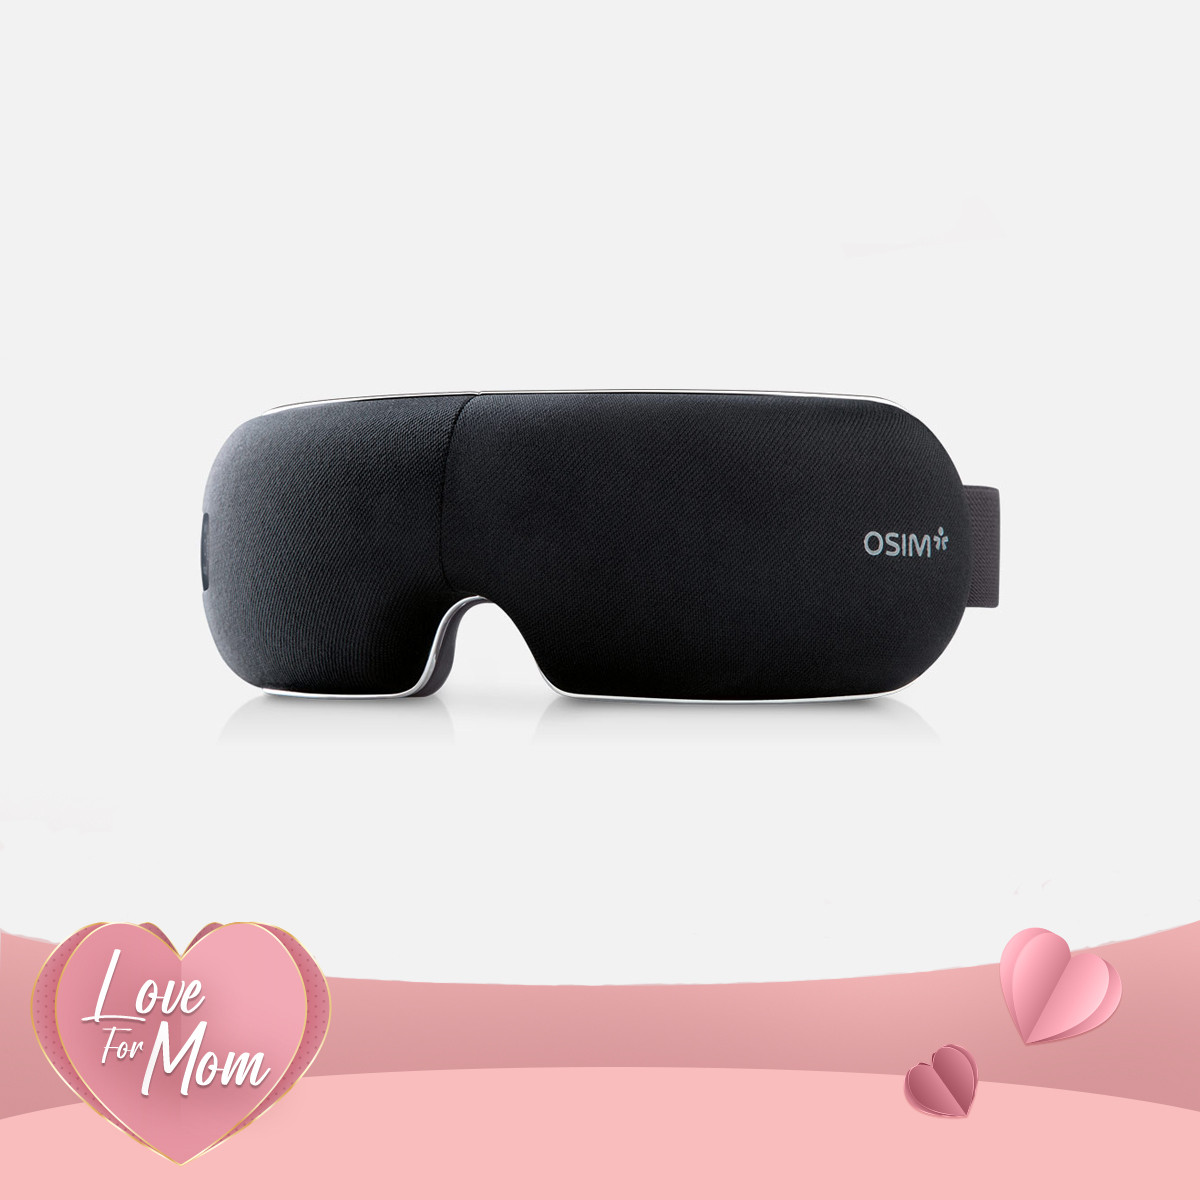 uVision Air Eye Massager